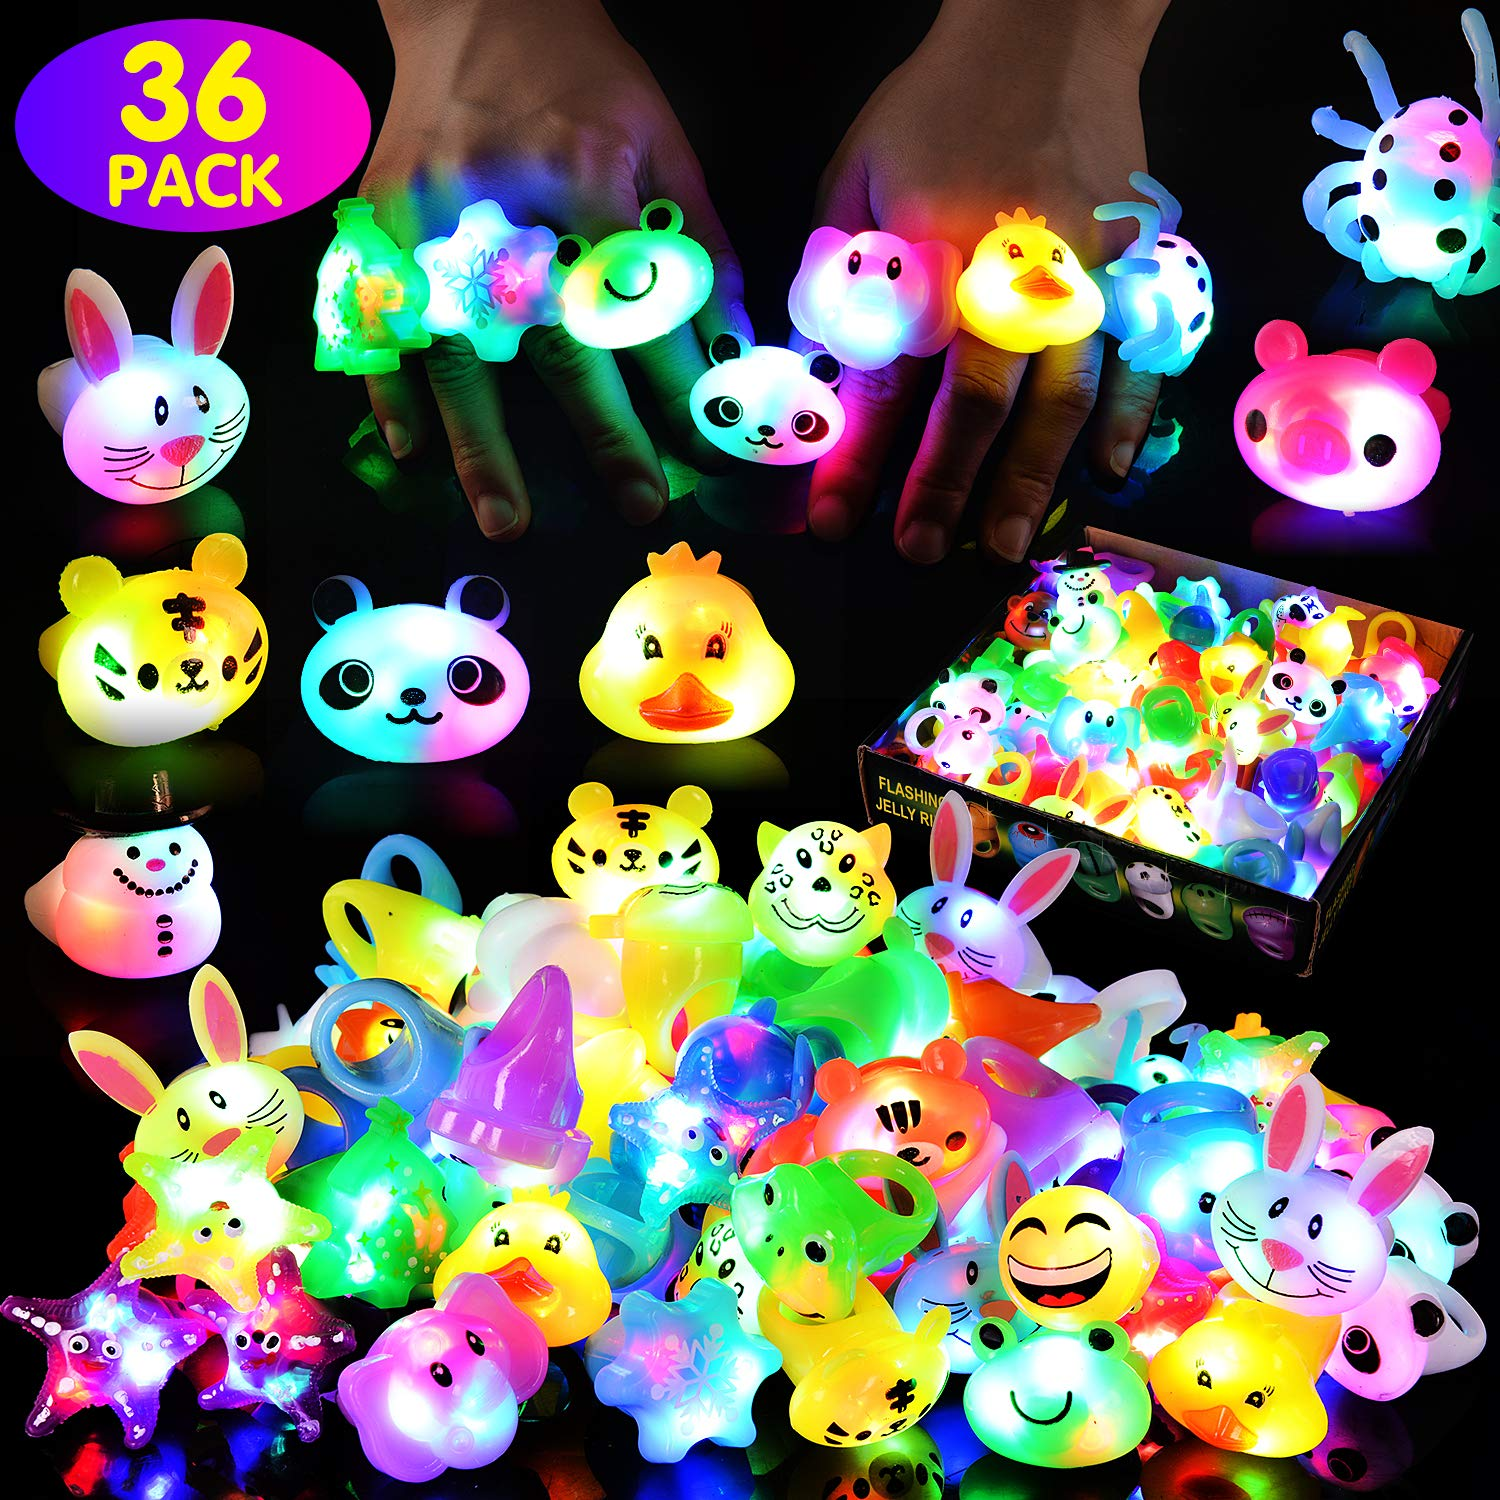 Victostar Party Favors for Kids Light up Rings Flashing Led Finger Toys Glow in The Dark Party Supplies by Victostar